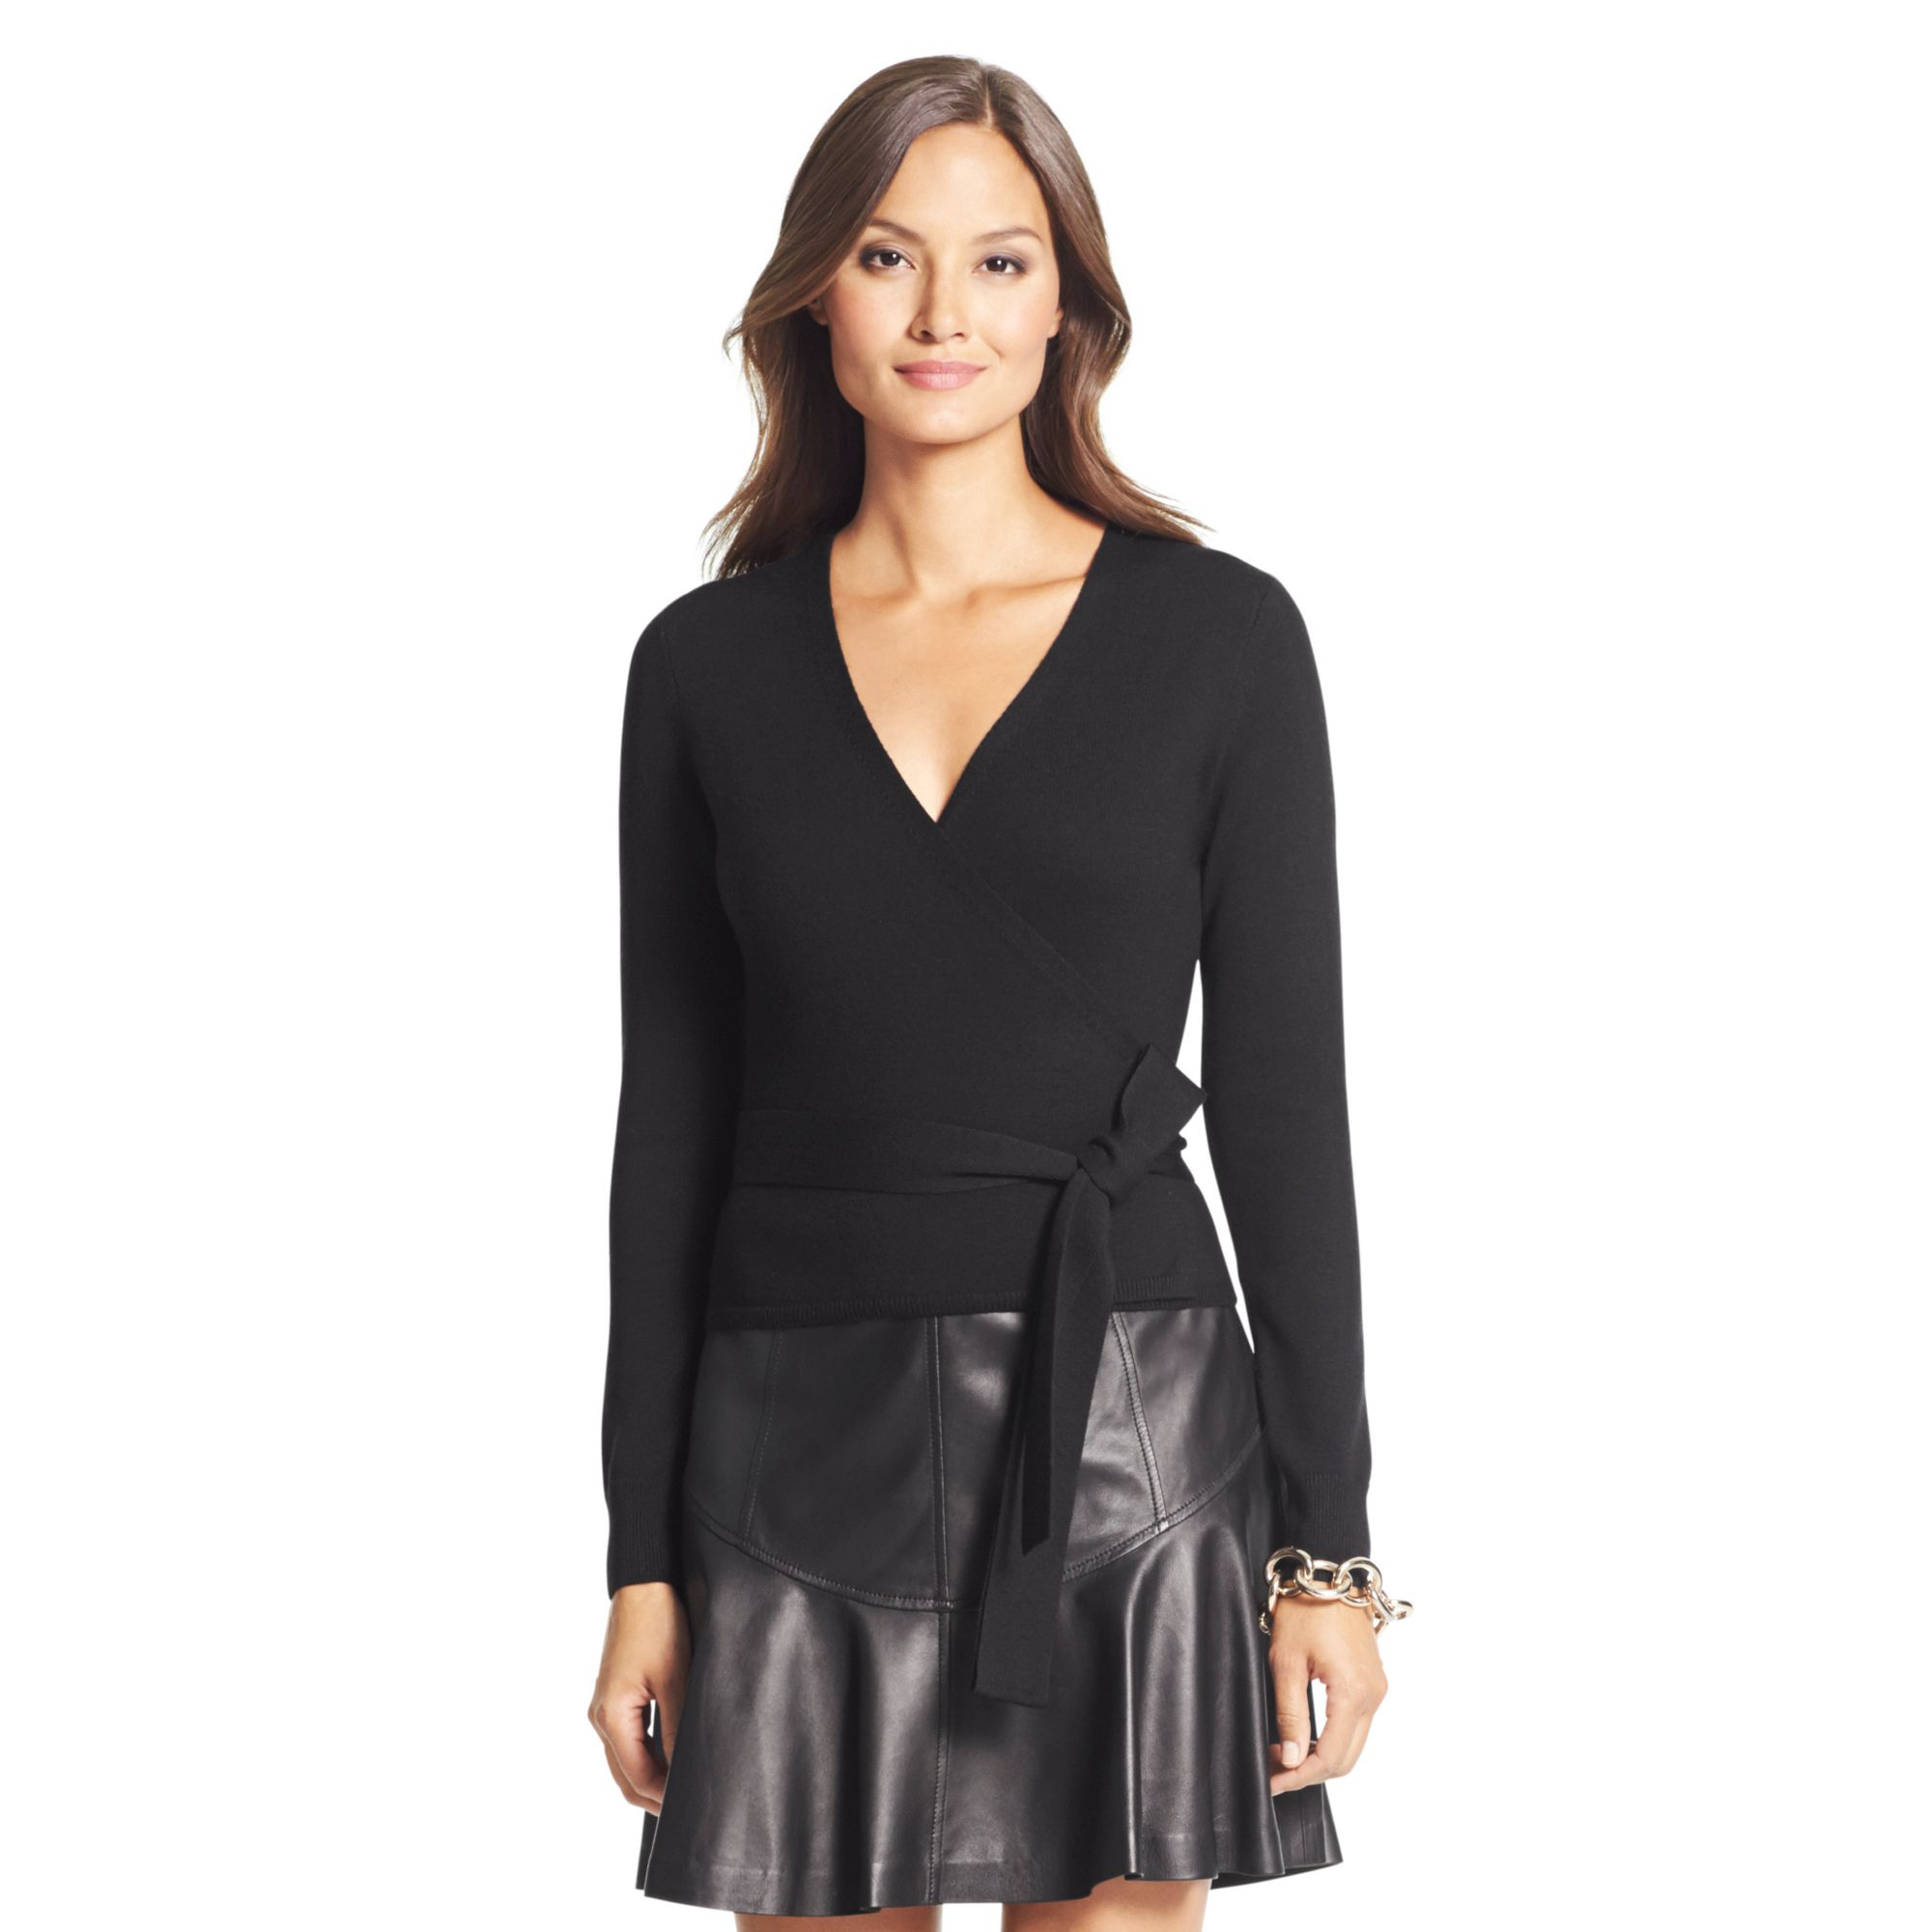 Diane von furstenberg Ballerina Wool Wrap Sweater in Black | Lyst